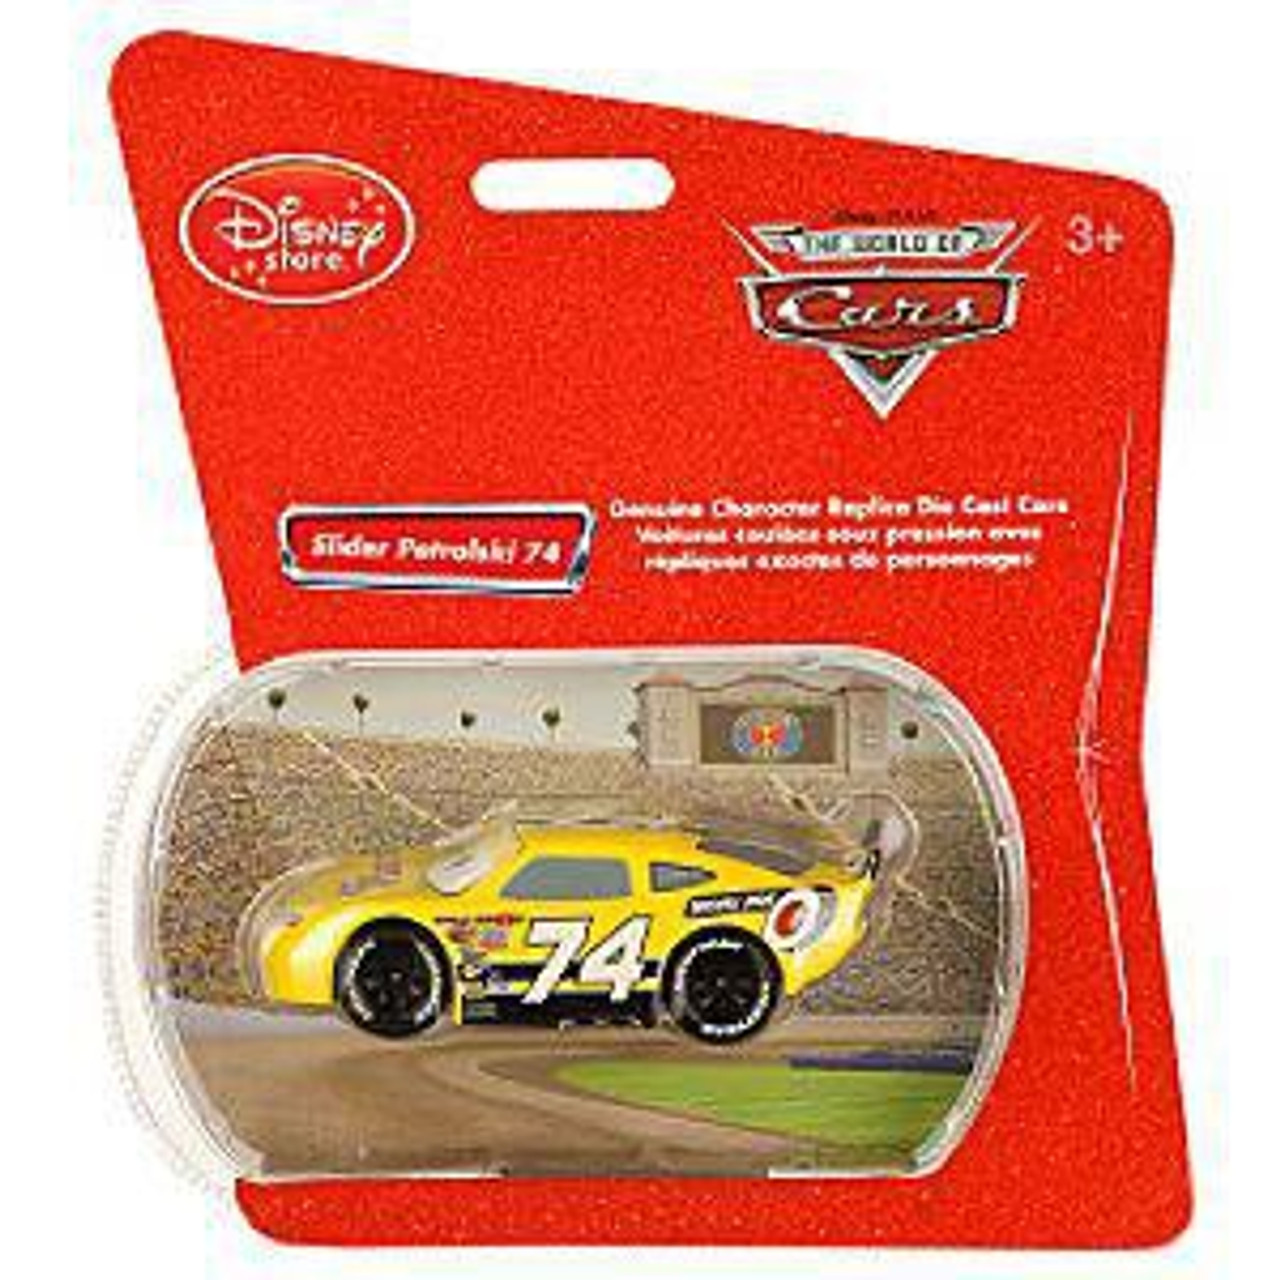 Disney Cars 1:48 Single Packs Slider Petrolski No. 74 Exclusive Diecast Car [Sidewall Shine]